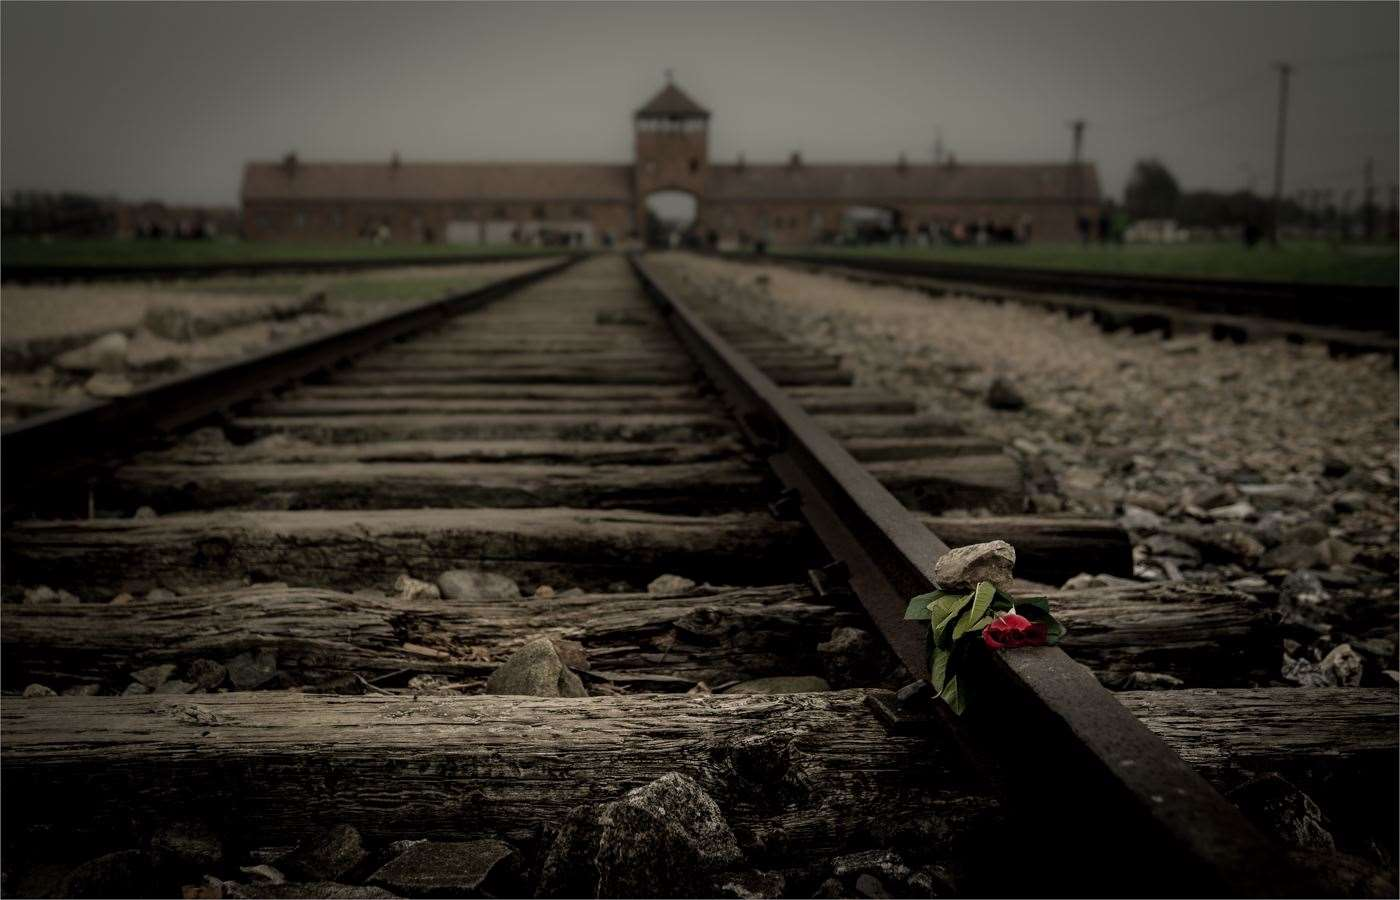 More than six million Jews were killed at Nazi concentration camps like Auschwitz. Picture: Neil French Ashford Photographic Society